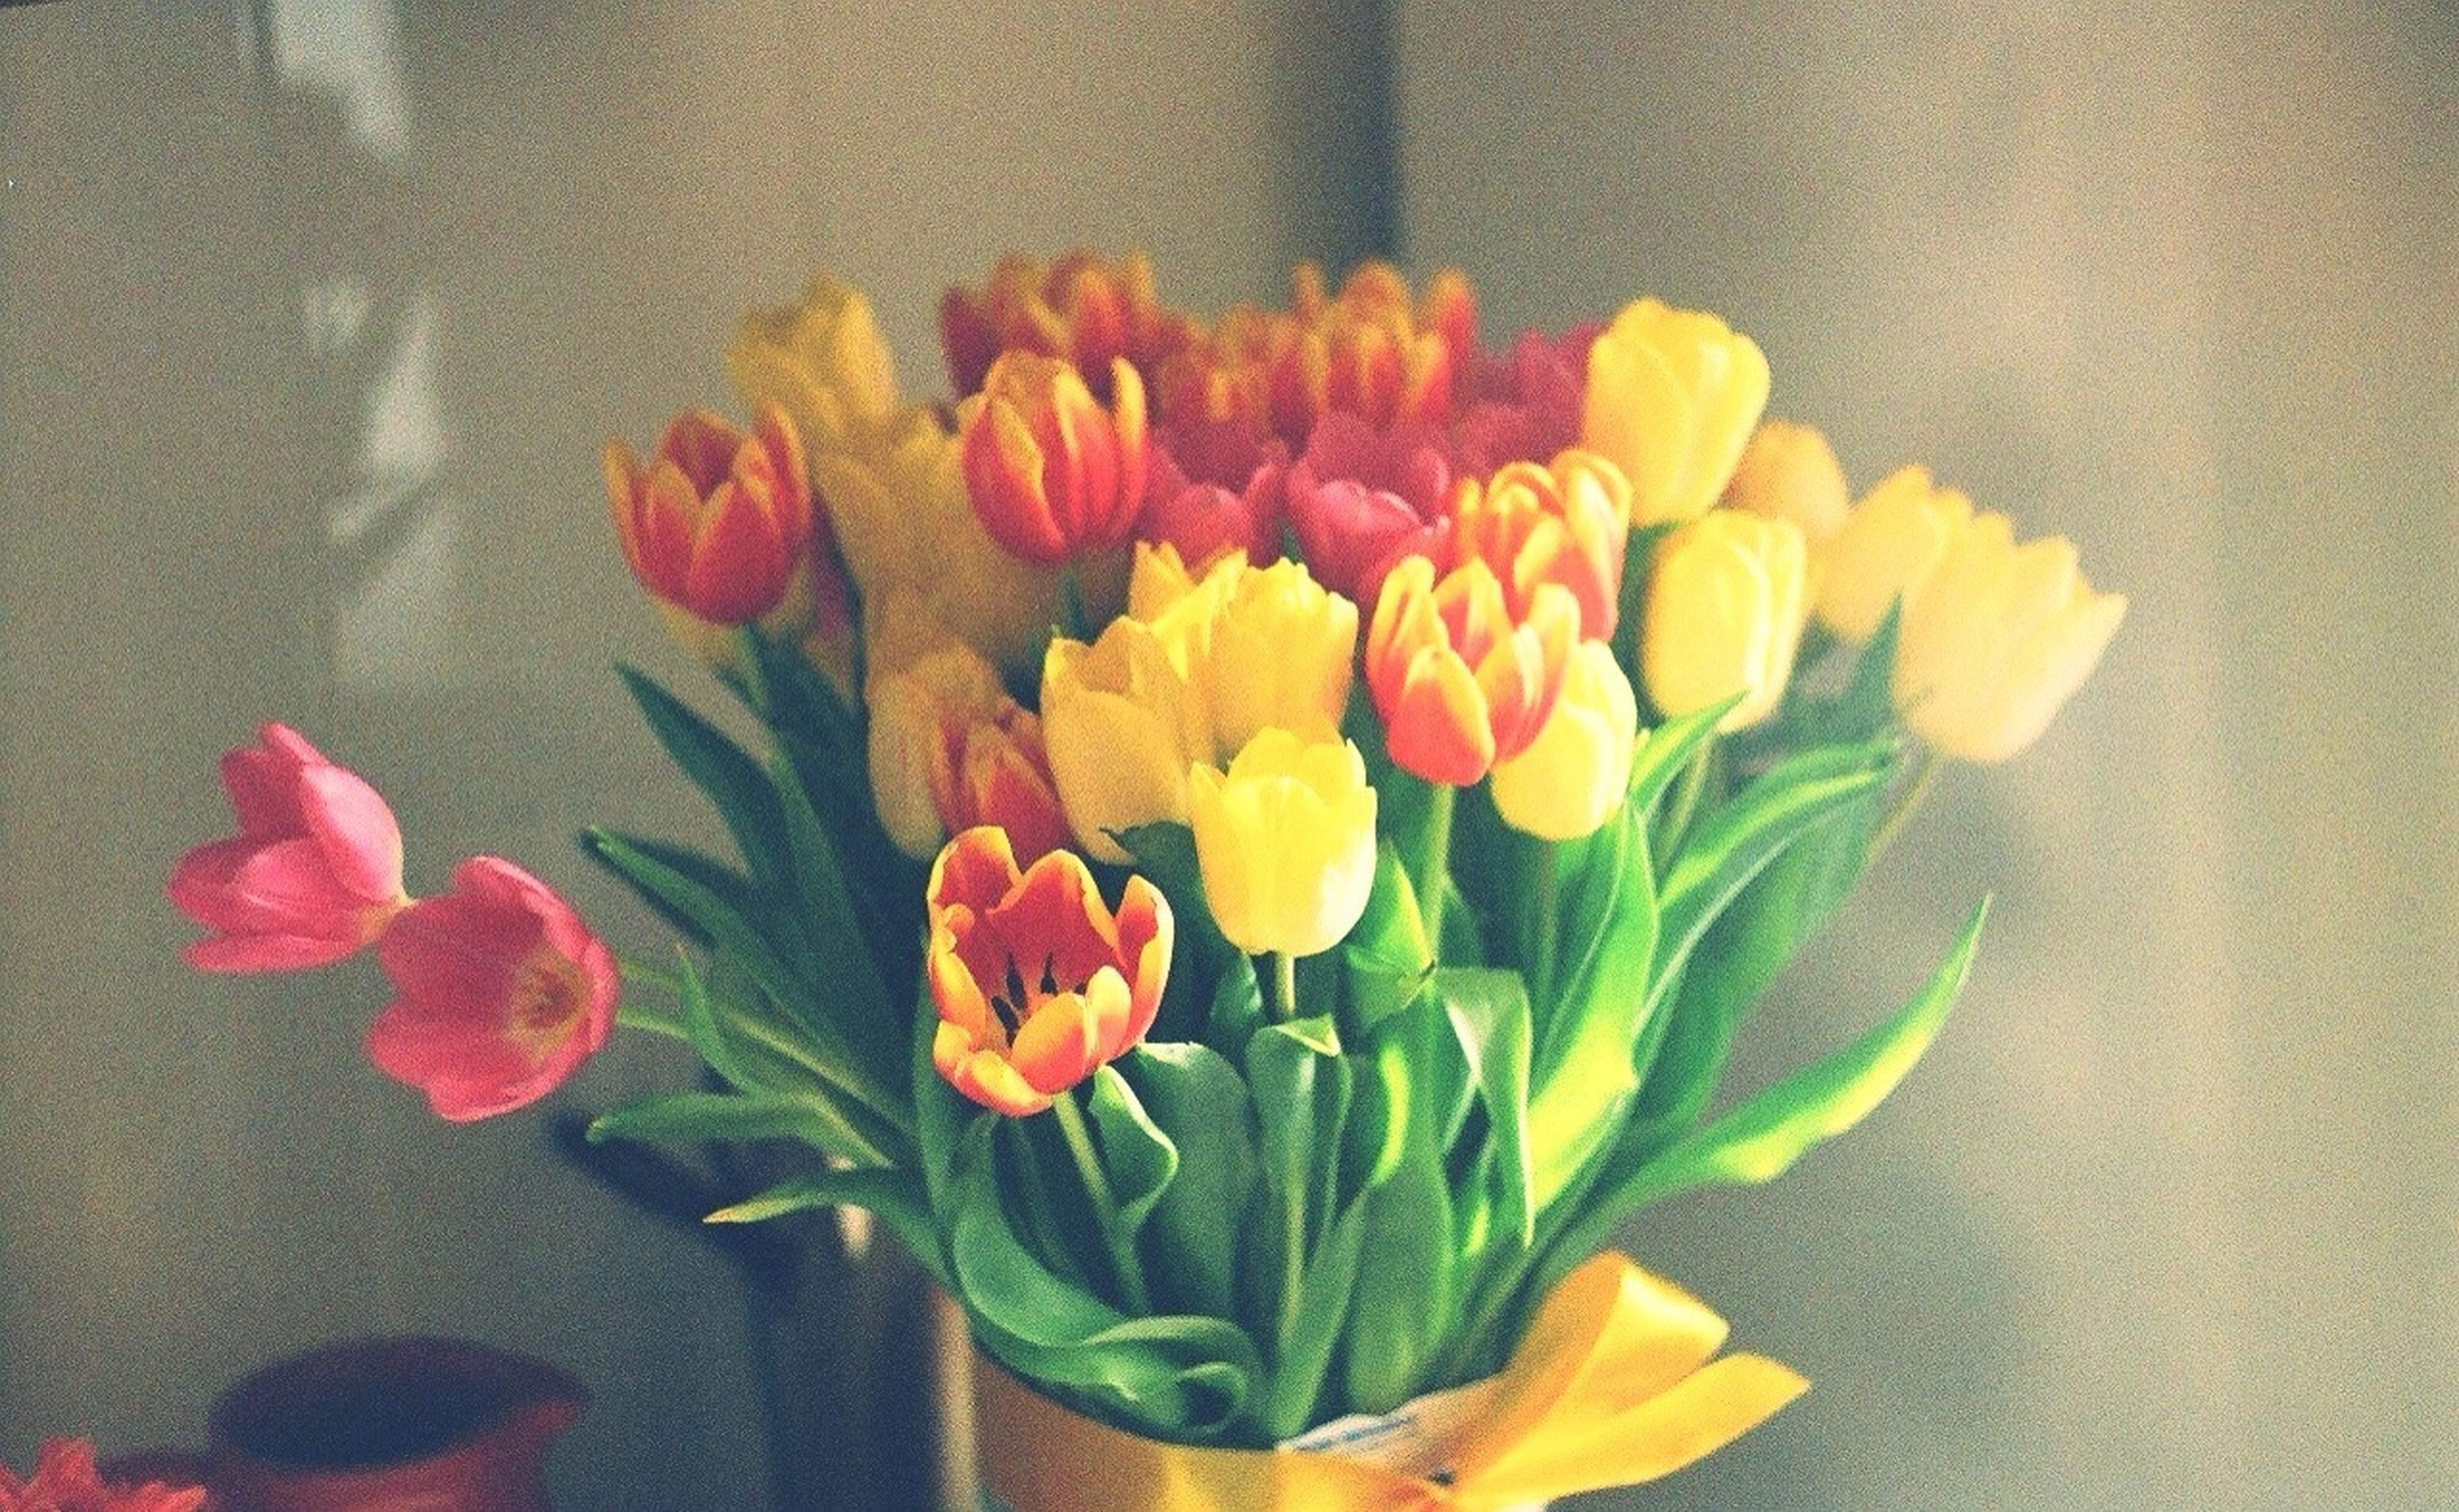 flower, freshness, petal, fragility, flower head, indoors, vase, beauty in nature, tulip, plant, multi colored, growth, nature, leaf, yellow, flower arrangement, close-up, wall - building feature, bouquet, rose - flower